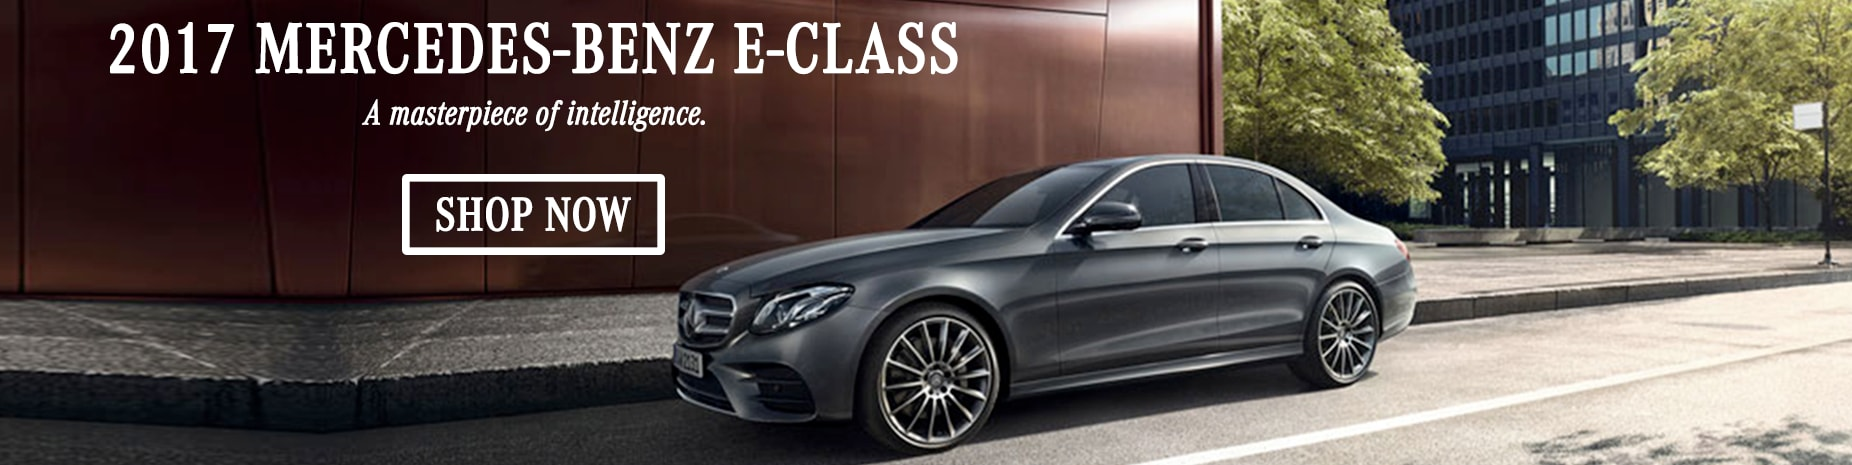 Plaza motor company vehicles for sale in creve coeur mo for St louis mercedes benz dealers